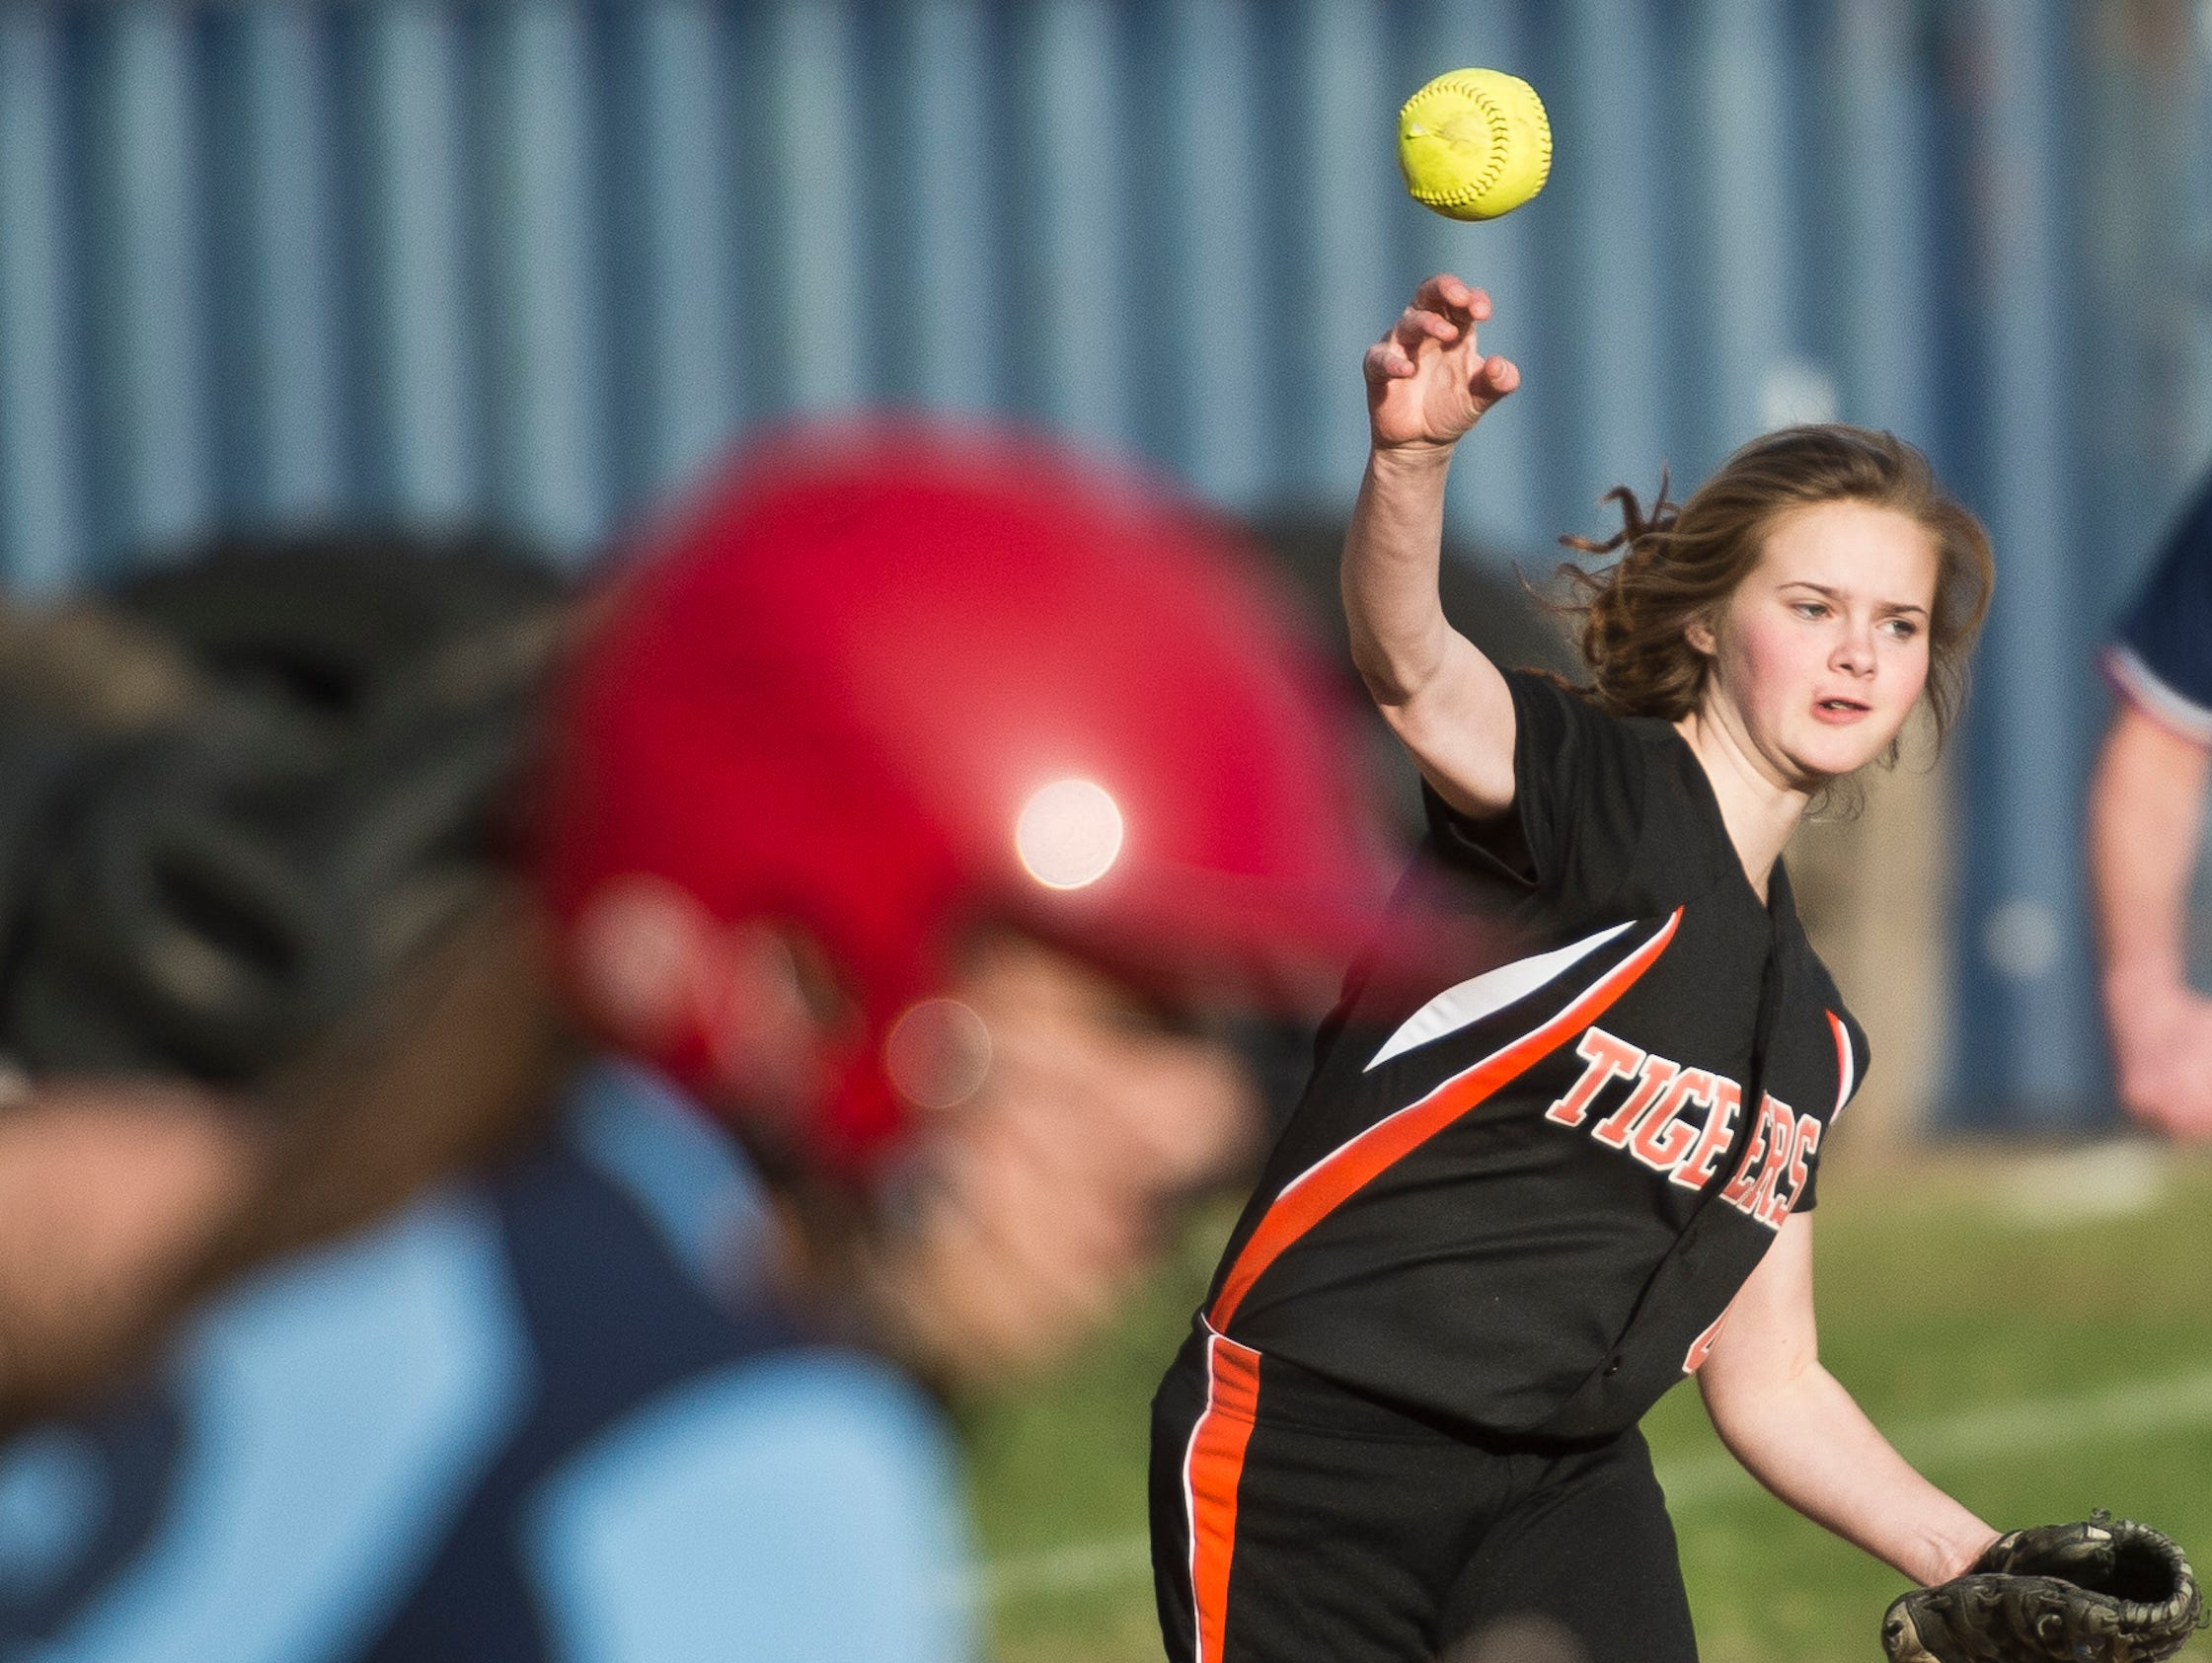 Middlebury's Darcy Staats fields a hit off Mount Mansfield's Felicia Forsyth, making the throw to first for the out during their softball game on Tuesday in Jericho.